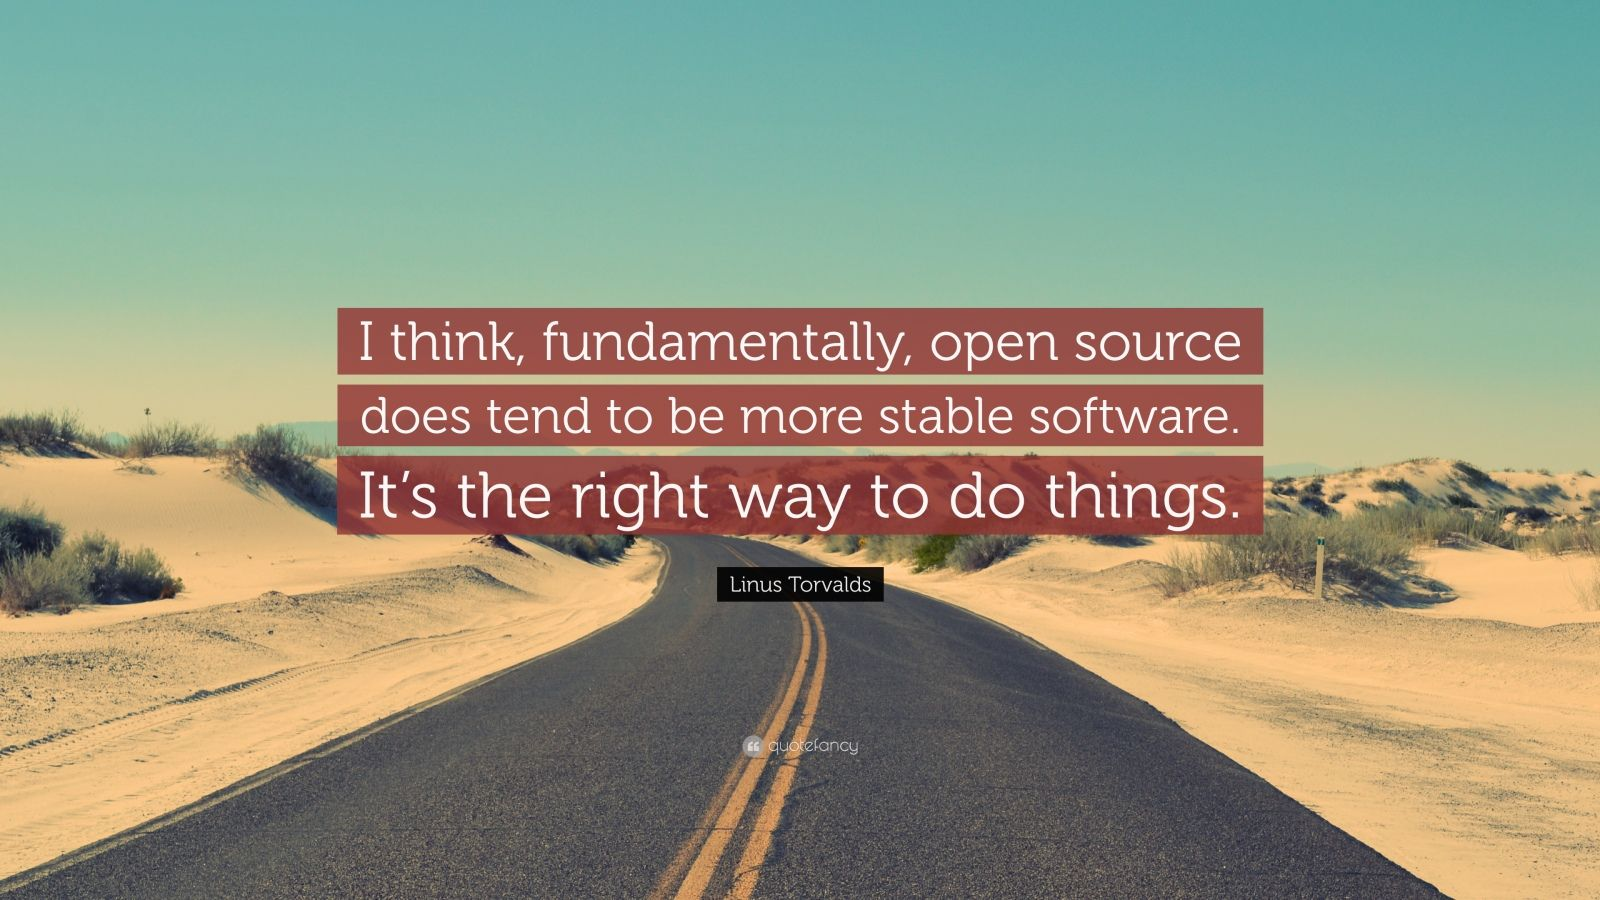 """Linus Torvalds Quote: """"I think, fundamentally, open source does tend to be more stable software. It's the right way to do things."""""""